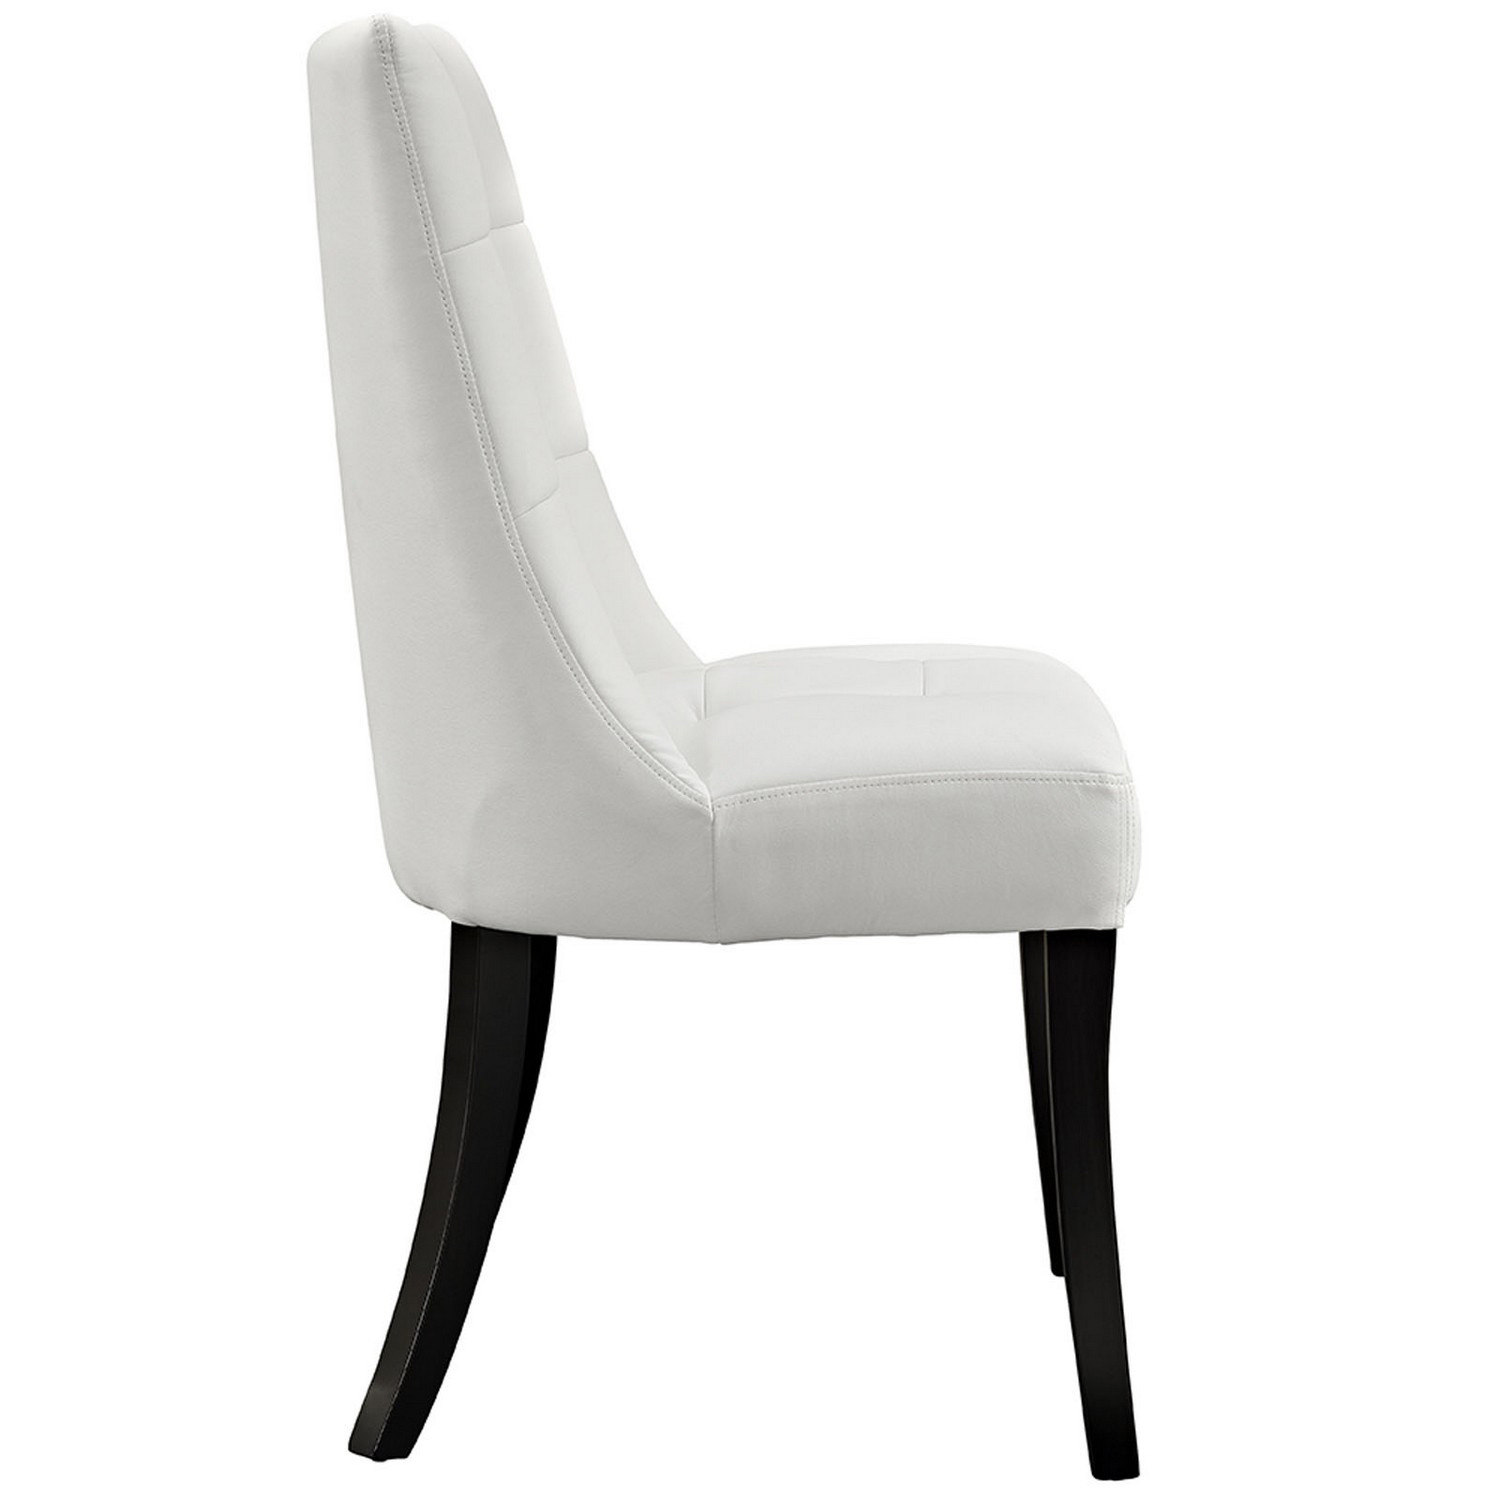 Modway Noblesse Vinyl Dining Chair Set of 2 - White